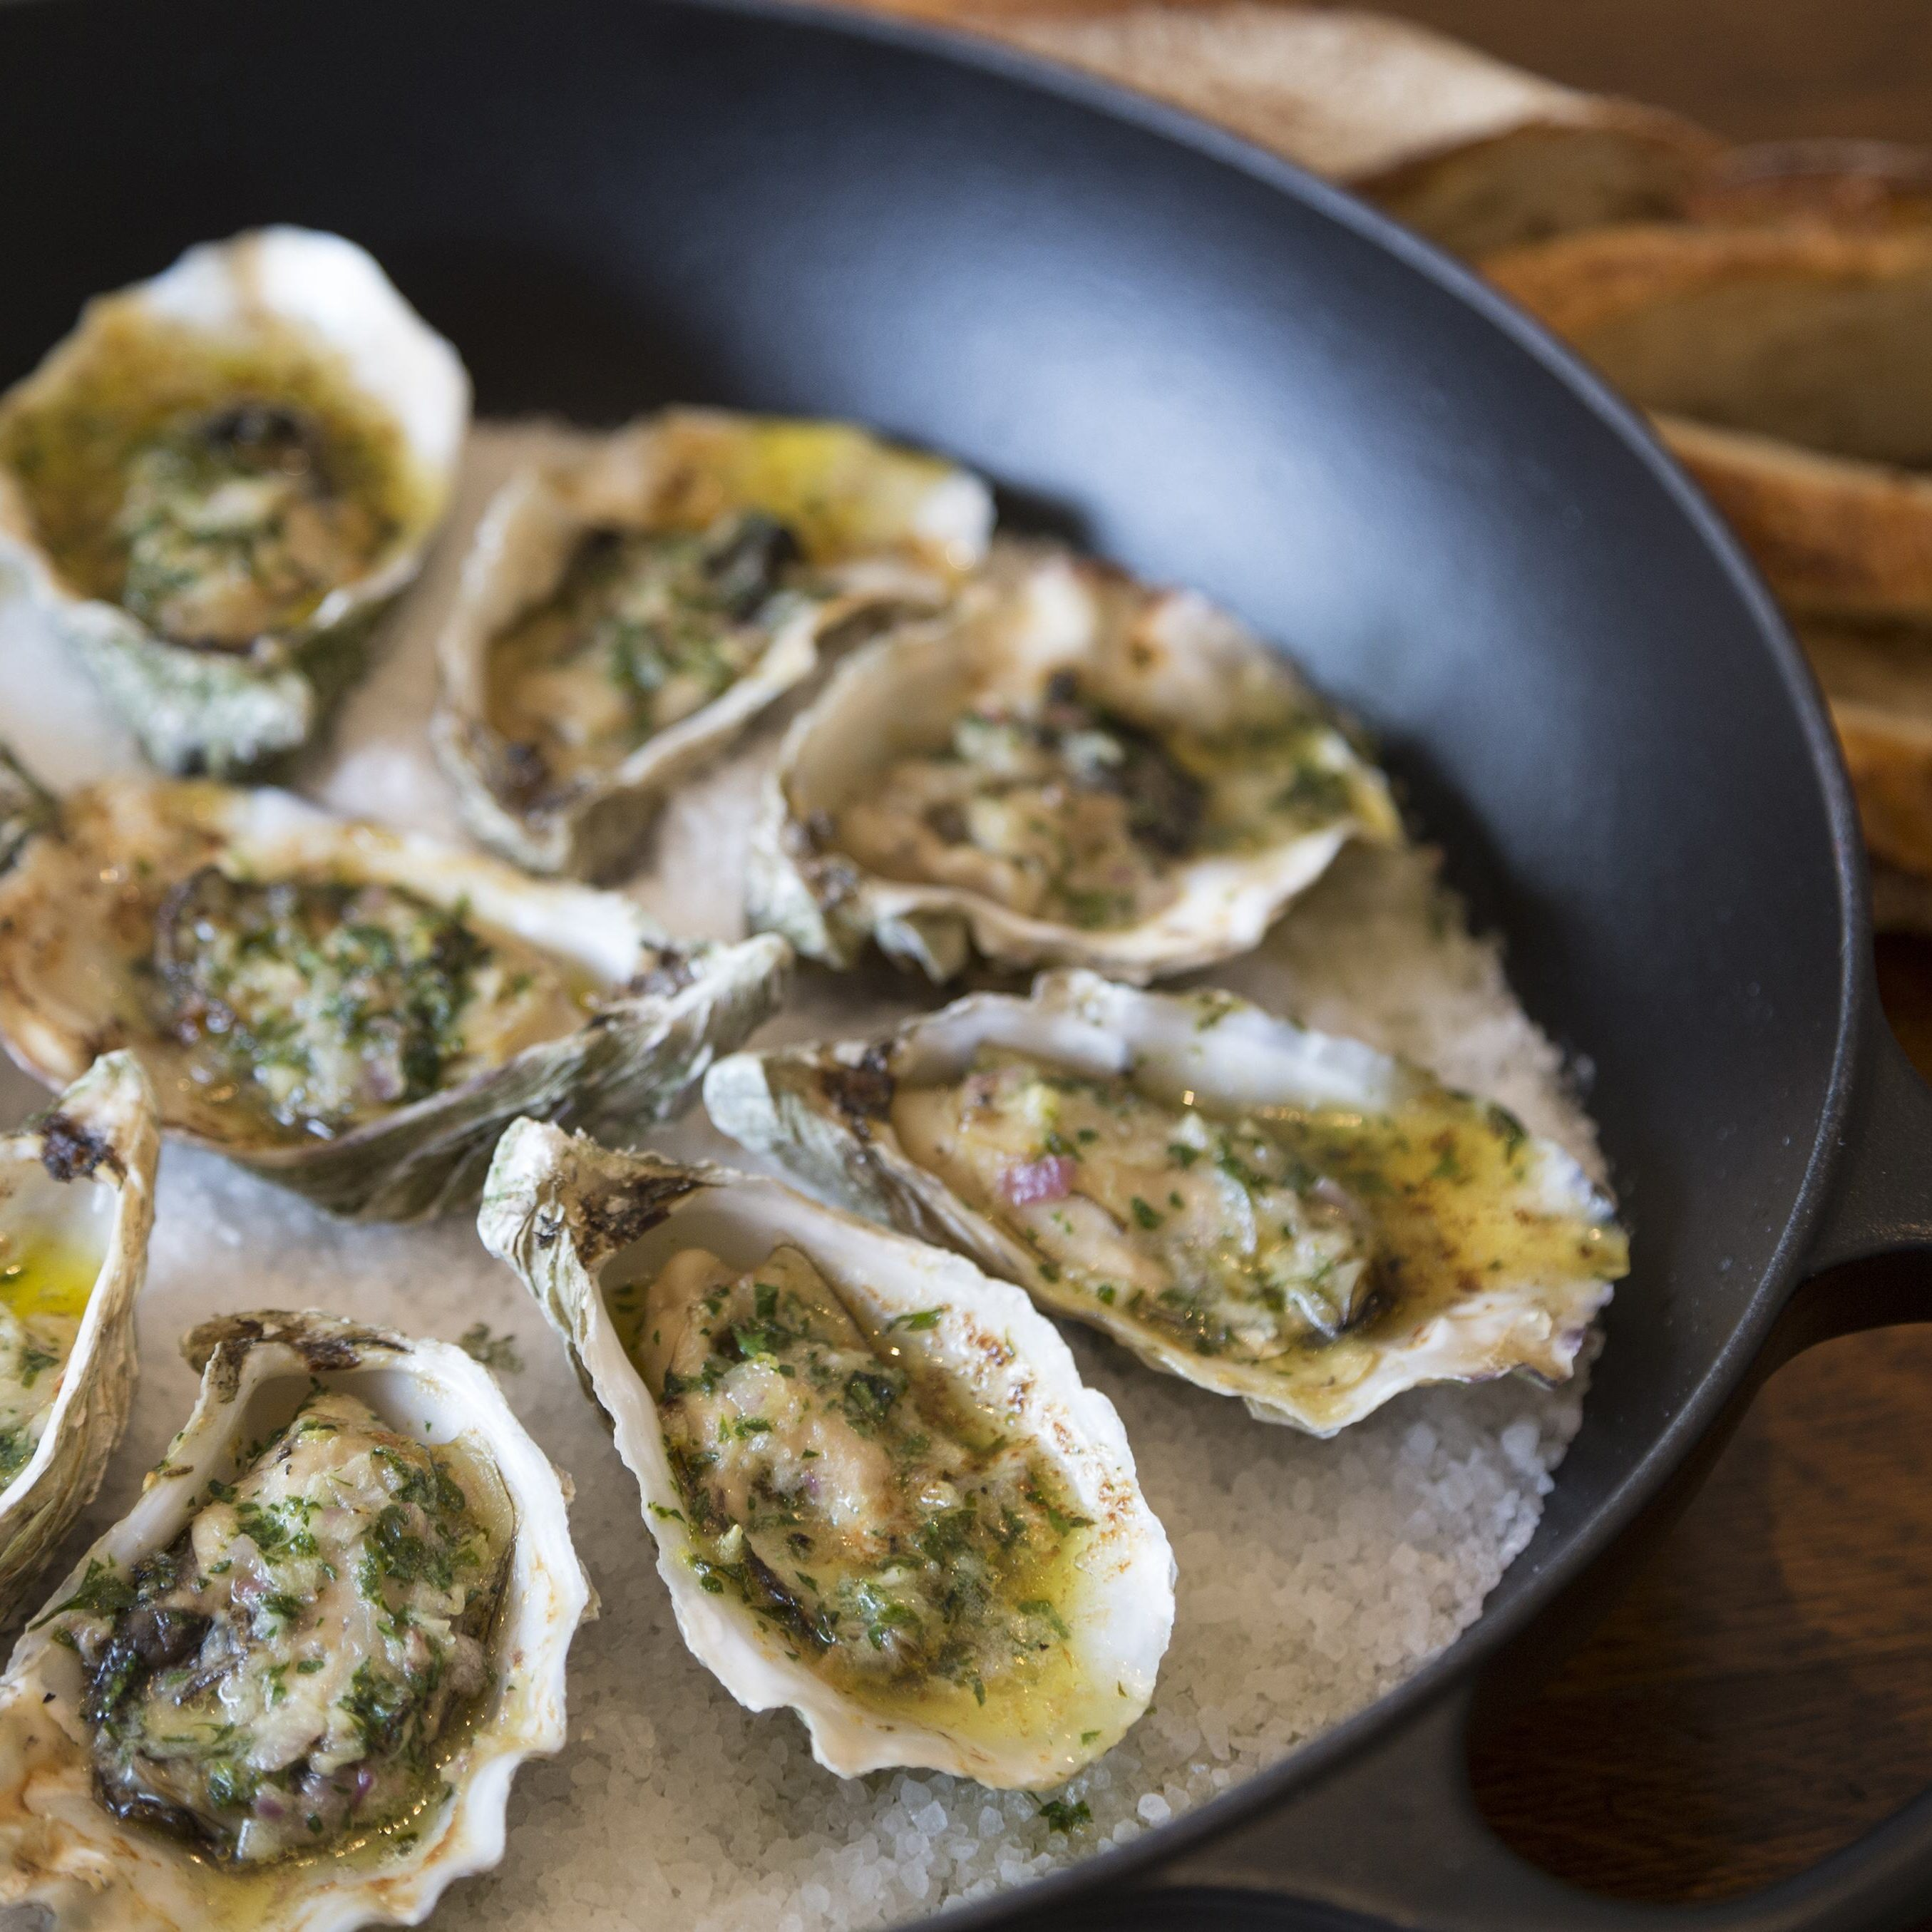 Grilled oysters with butter and garlic sauce, as prepared by host Sarah Sharratt on Cooking Channel series, UpRooted.